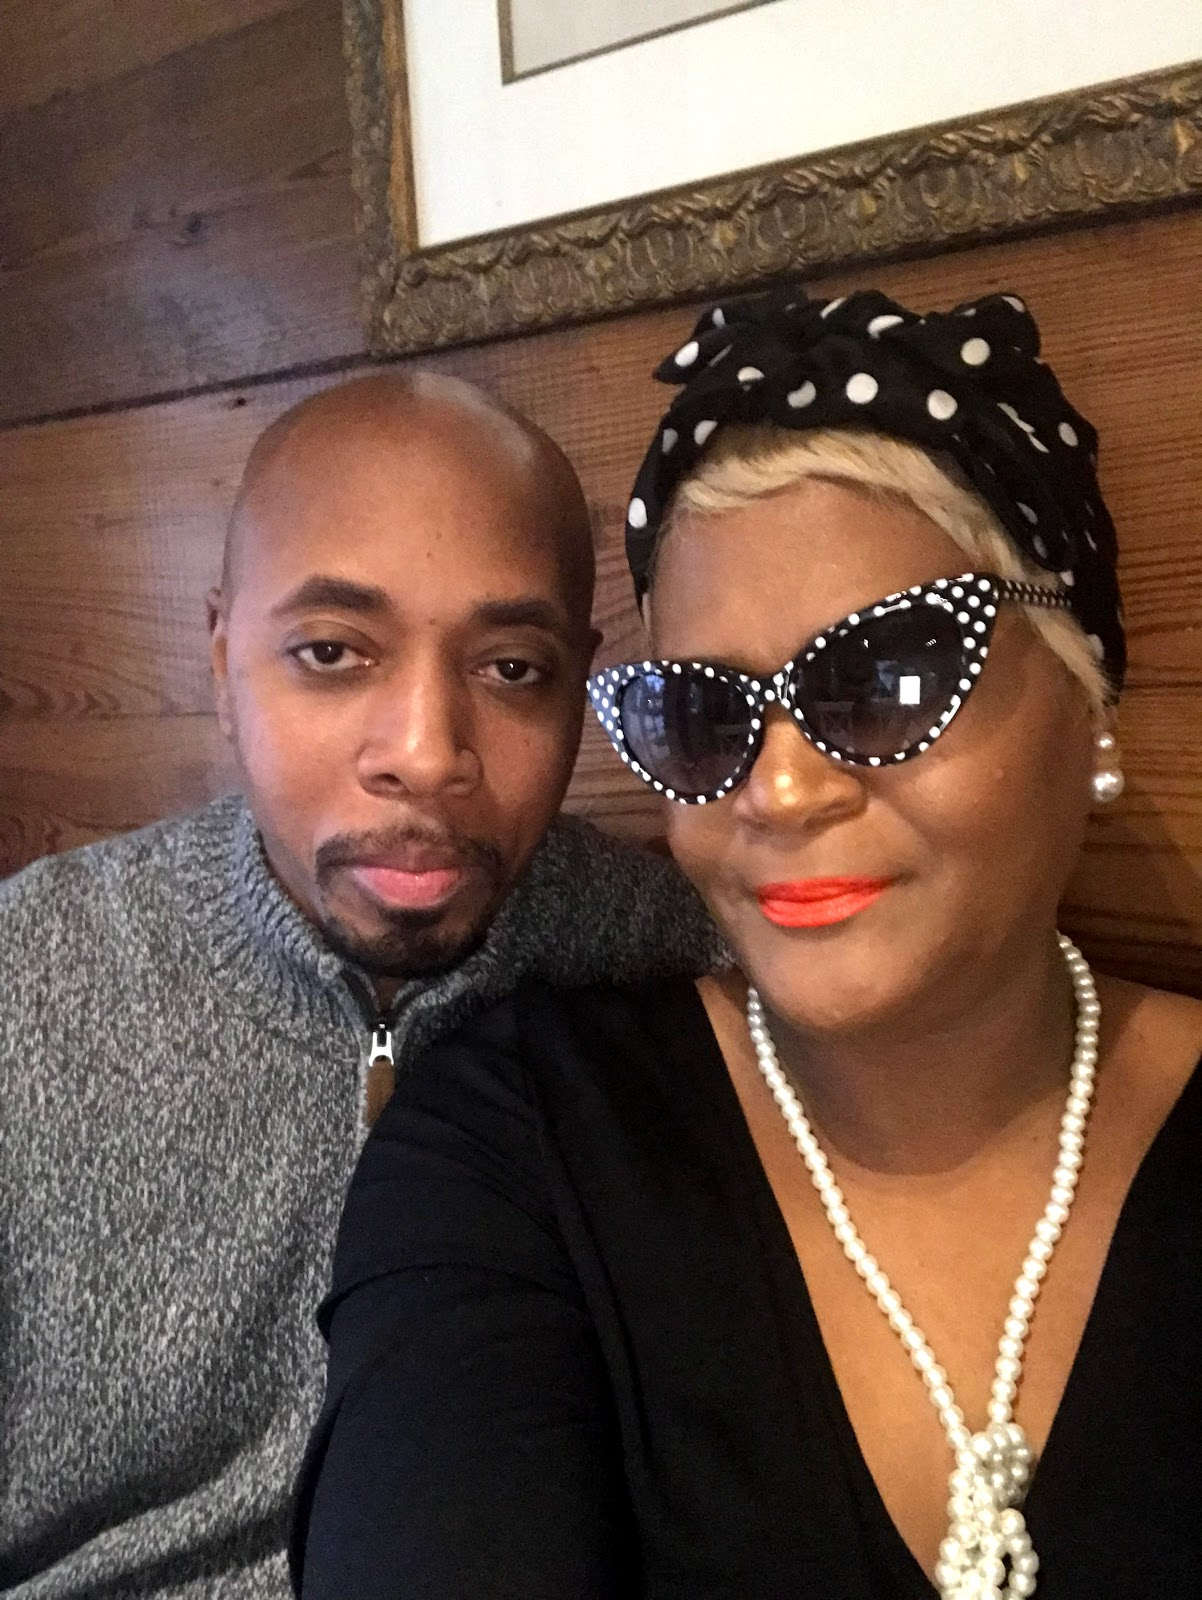 Image Woman and Man (Rico and Tange Bell) enjoying date night and sharing tips on restyling